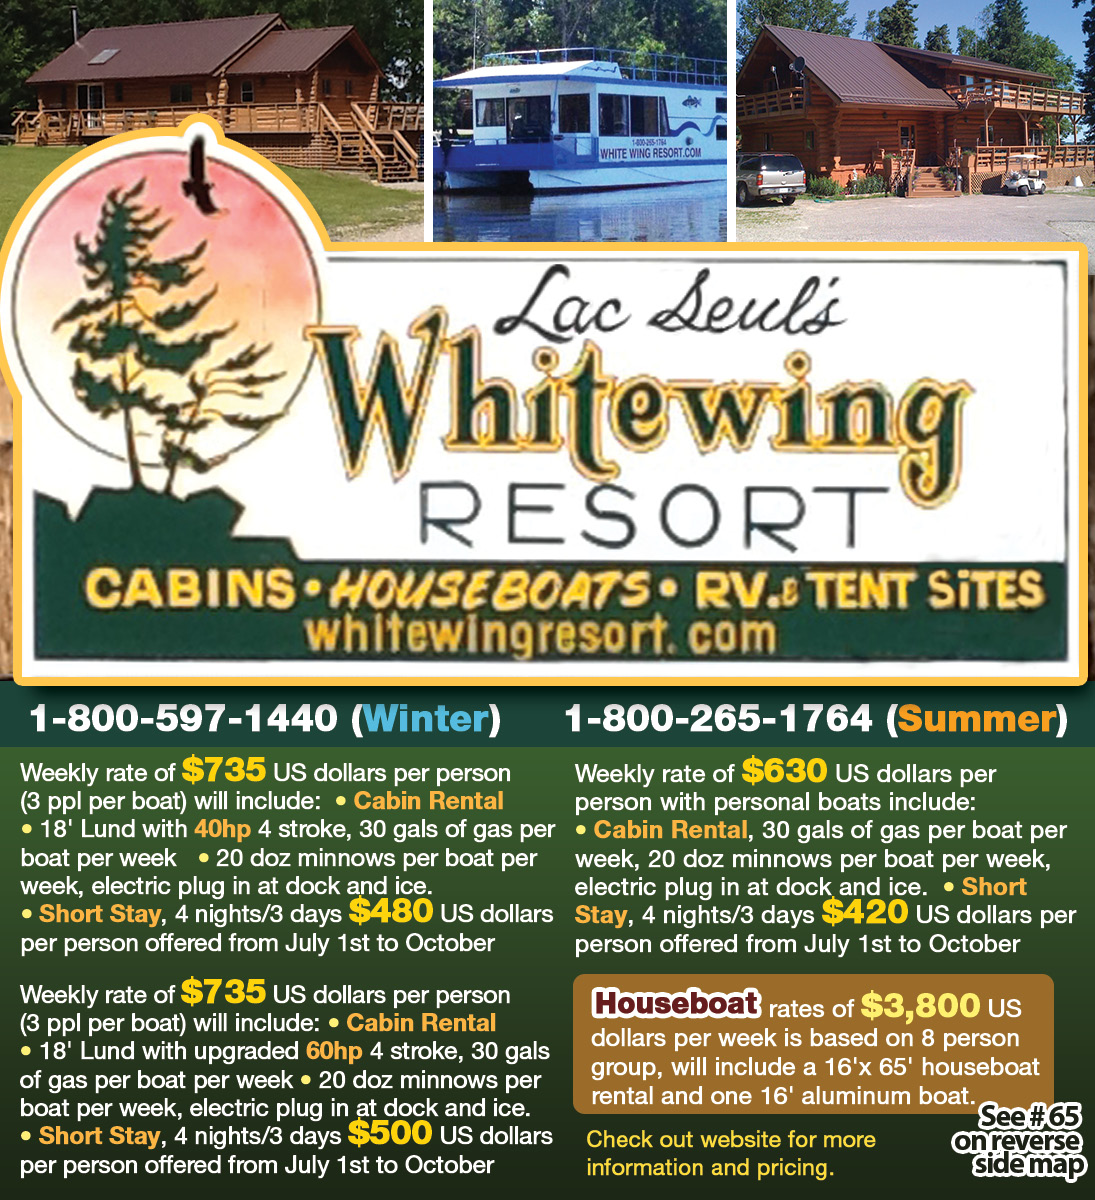 Whitewing Resort